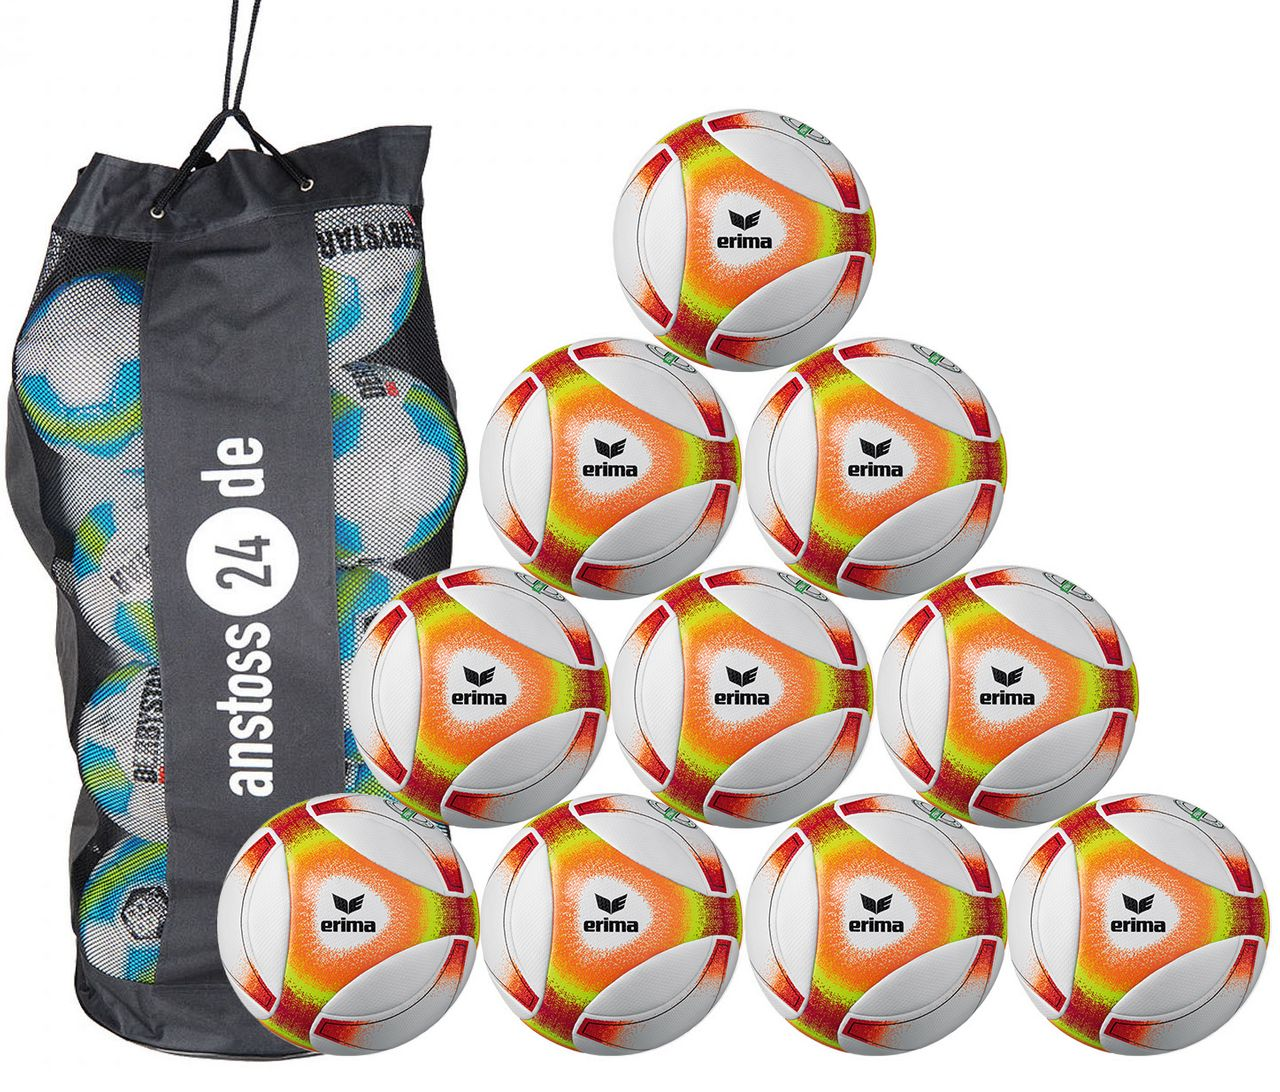 10 x erima Youth Futsal Futsal Hybrid JNR 310 (2019) incl. ball bag